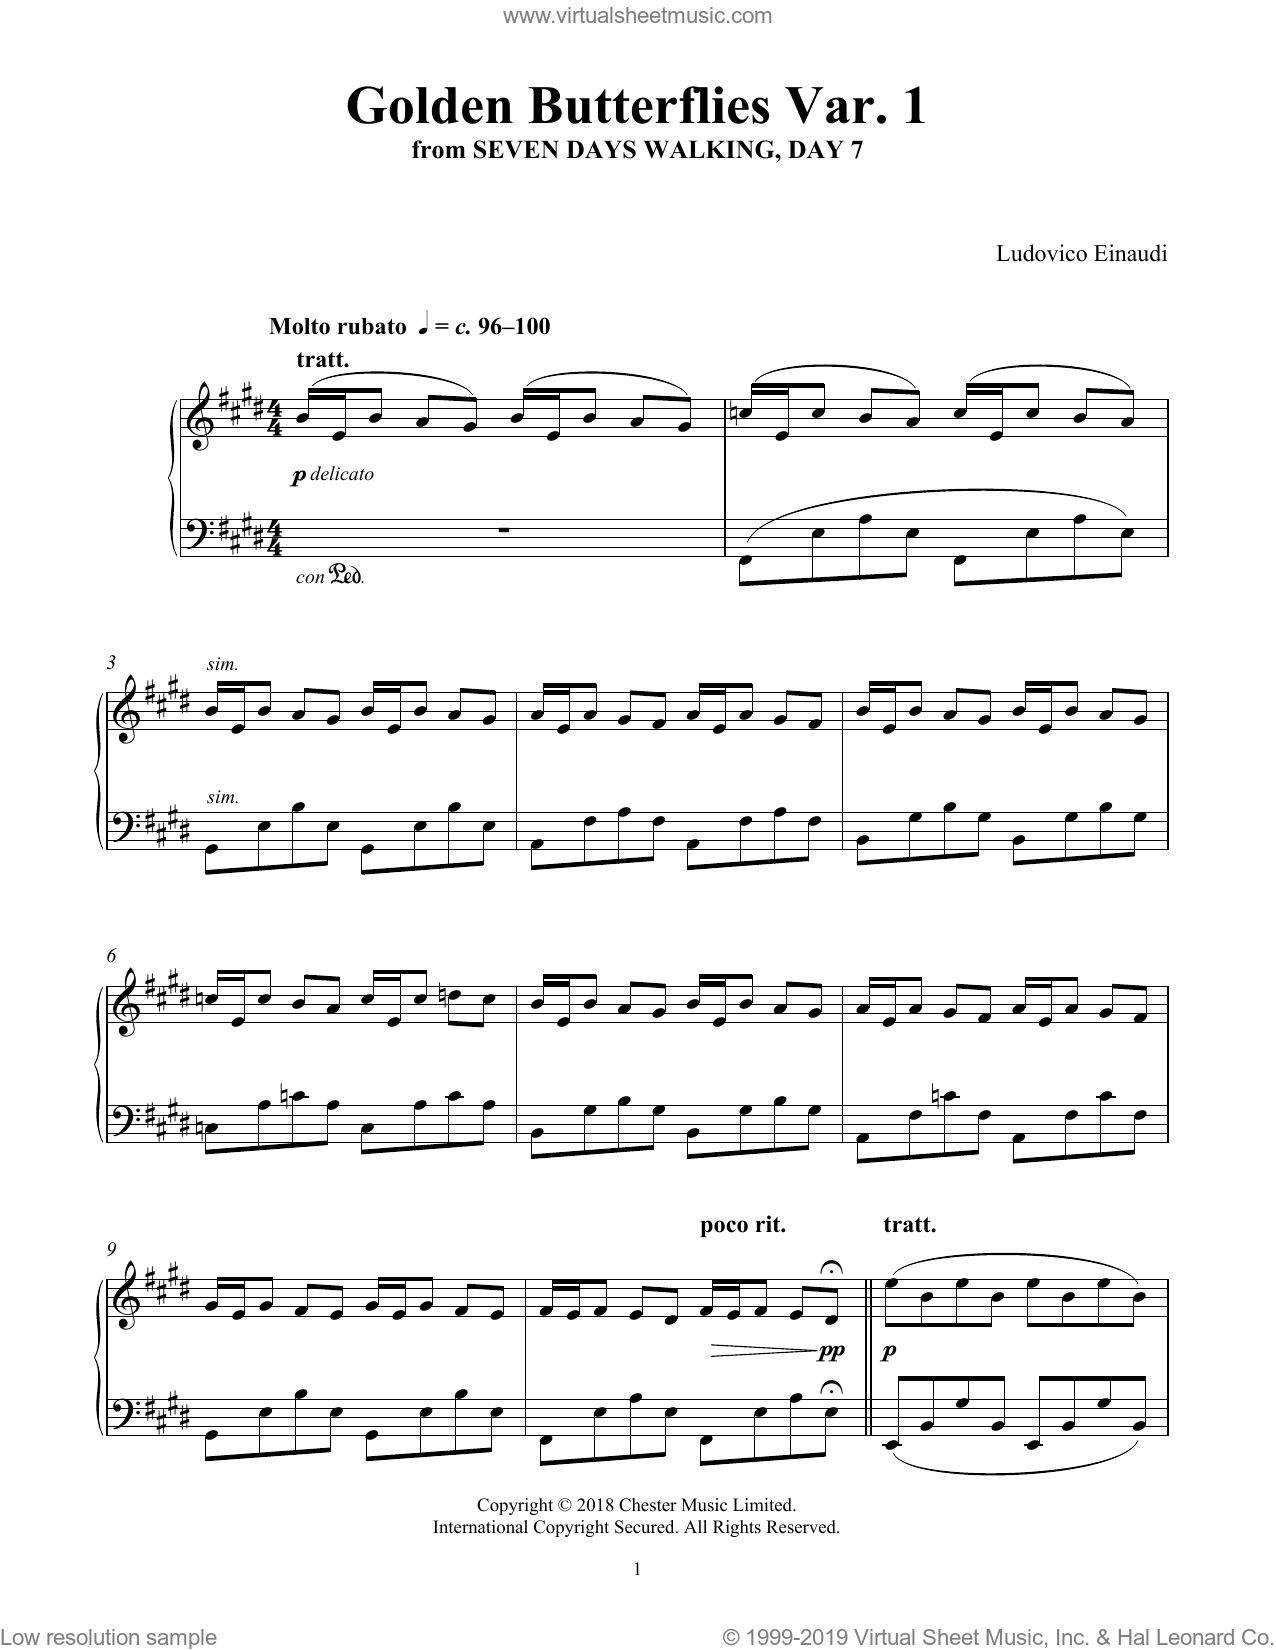 Golden Butterflies Var. 1 (from Seven Days Walking: Day 7) sheet music for piano solo by Ludovico Einaudi, classical score, intermediate skill level